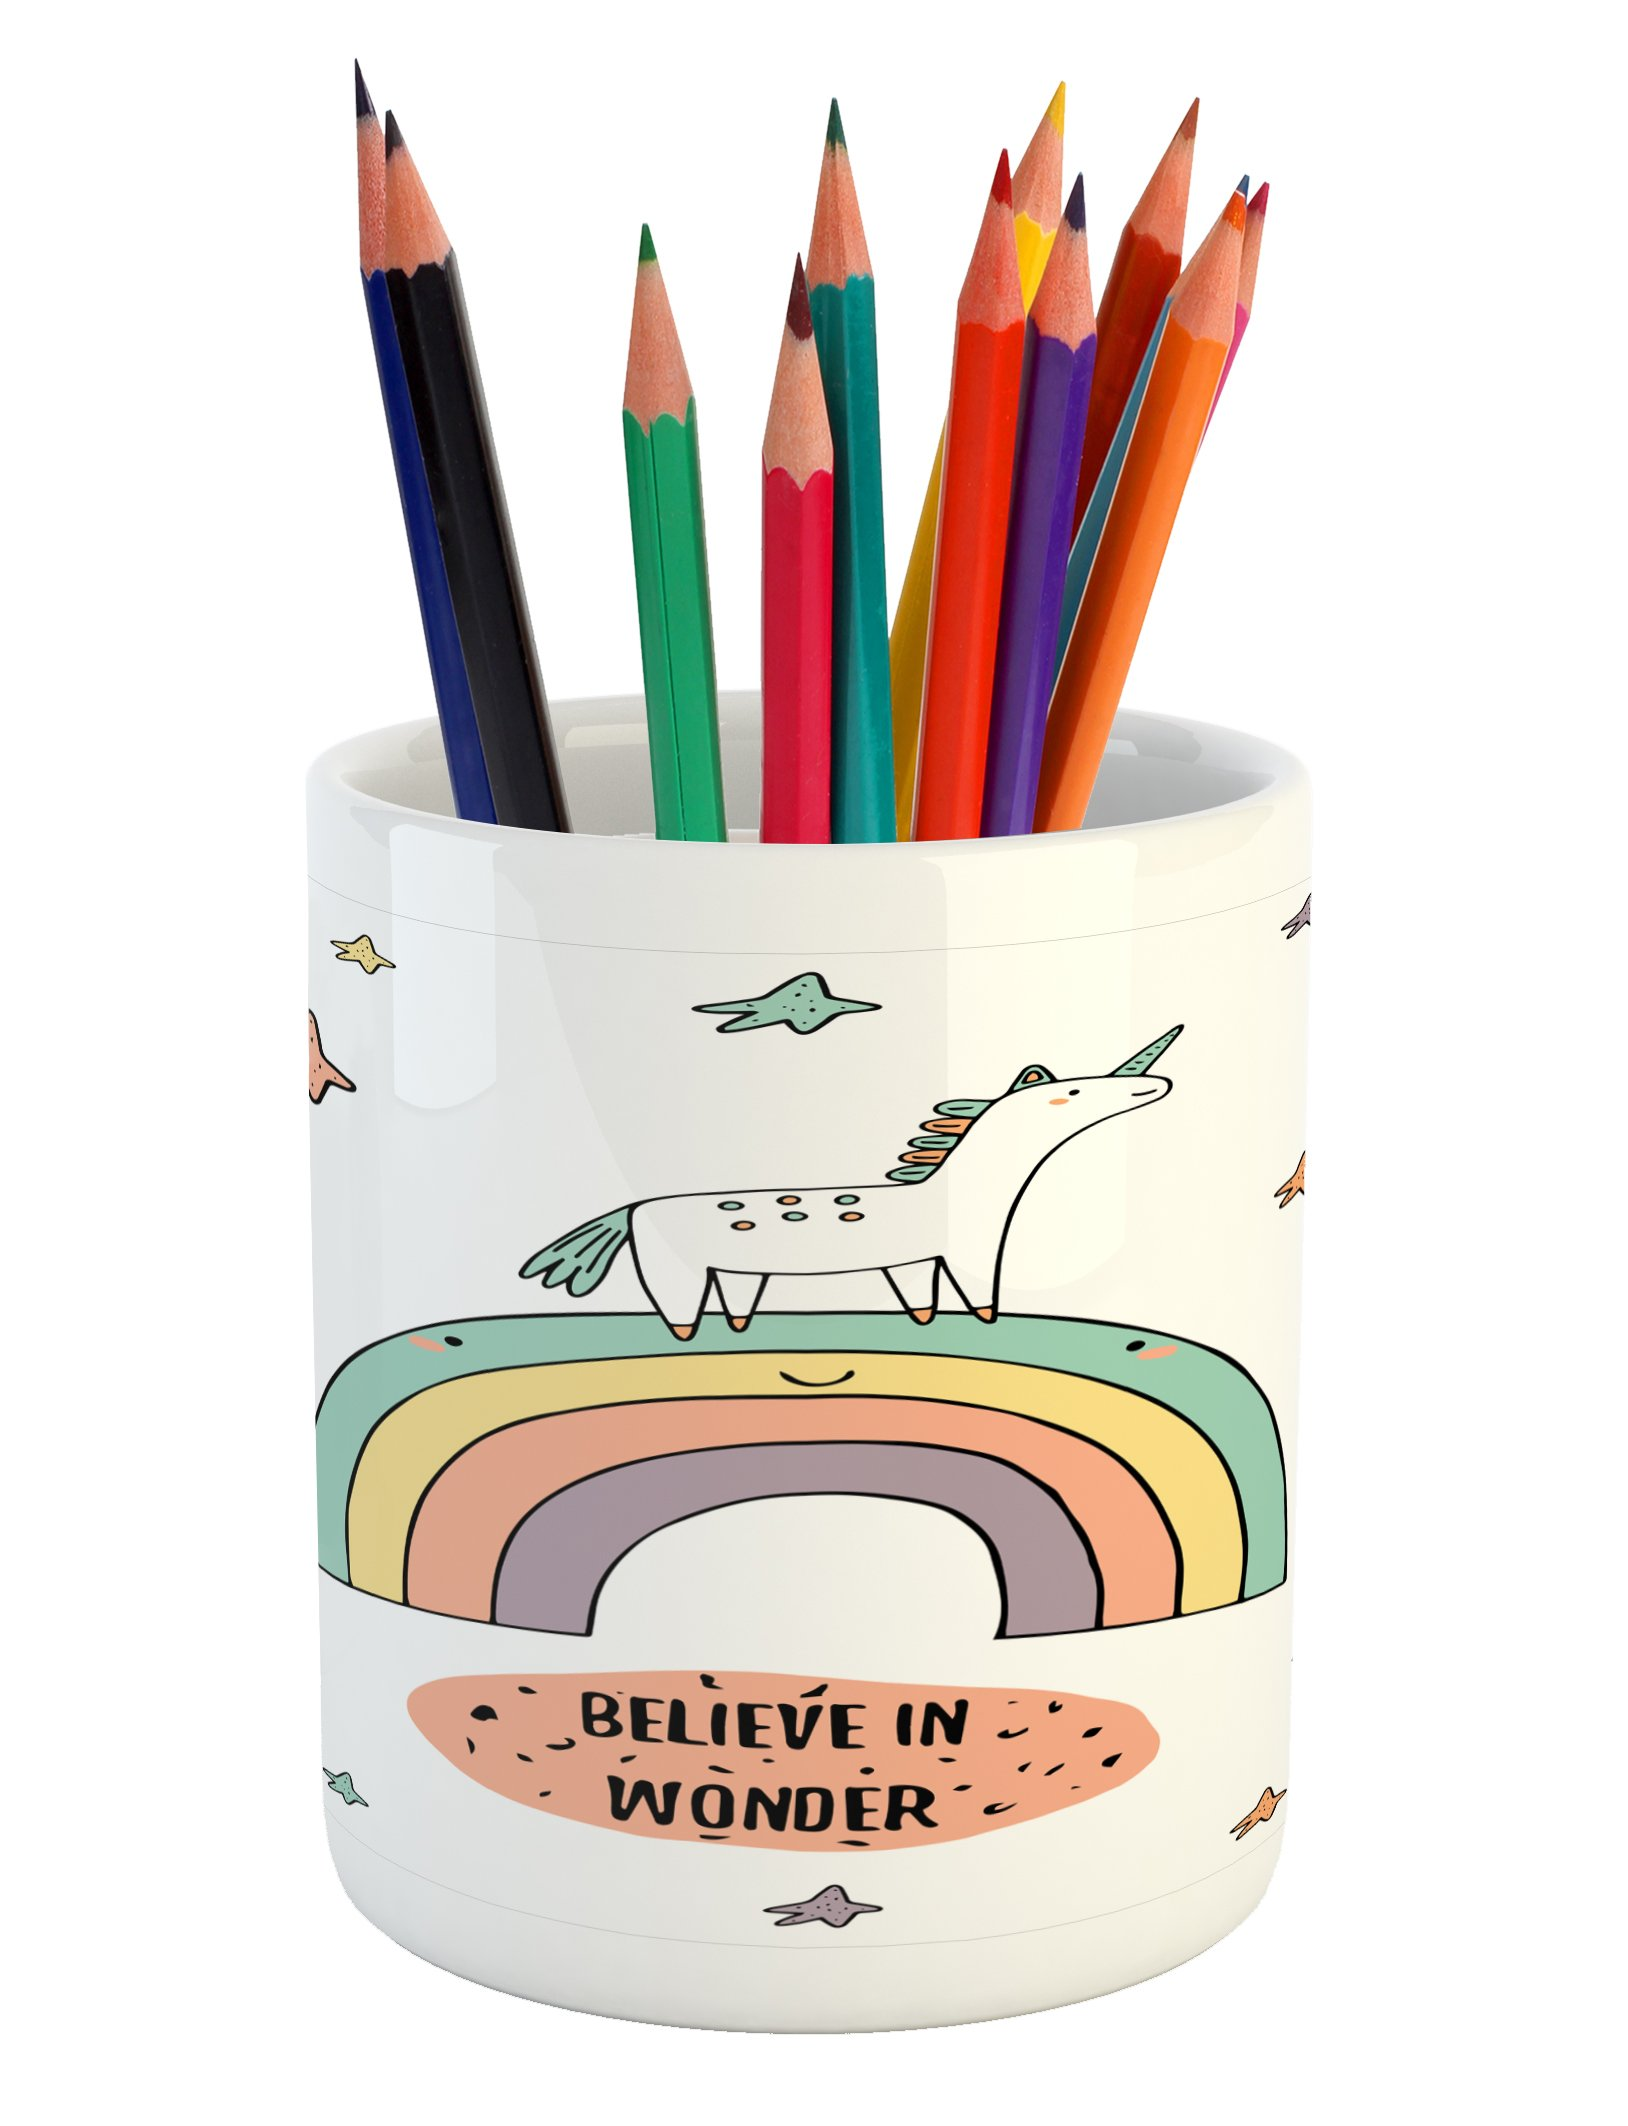 Ambesonne Unicorn Pencil Pen Holder, Hand Drawn Rainbow with Doodle Stars and Believe in Wonder Quote Positive Vibes, Printed Ceramic Pencil Pen Holder for Desk Office Accessory, Multicolor